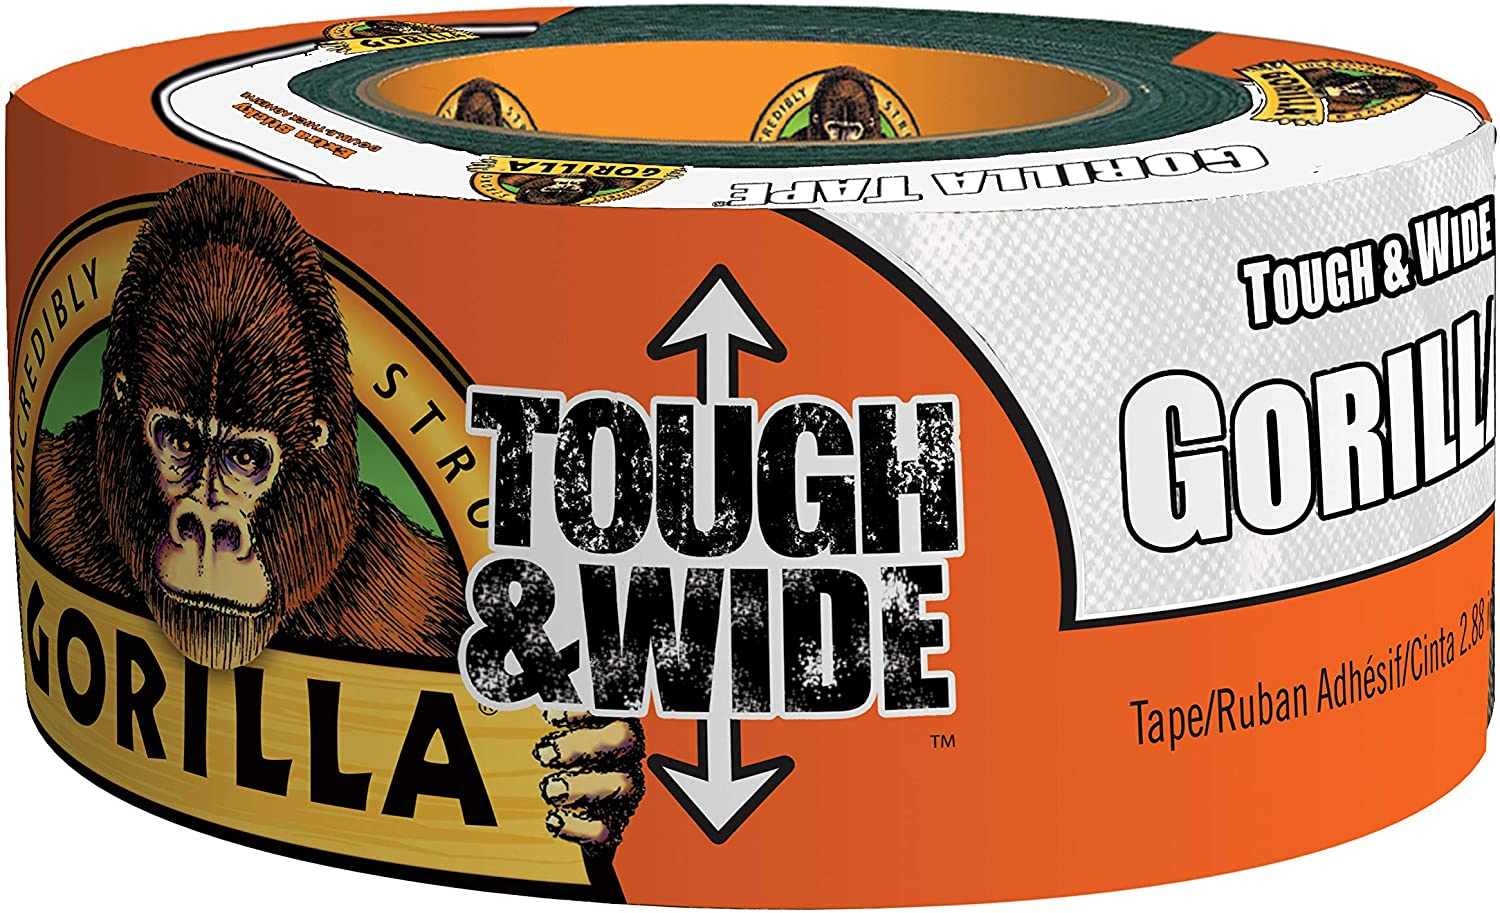 "Gorilla Tough & Wide White Duct Tape, 2.88"" x 25 yd, White (Pack of 4)"